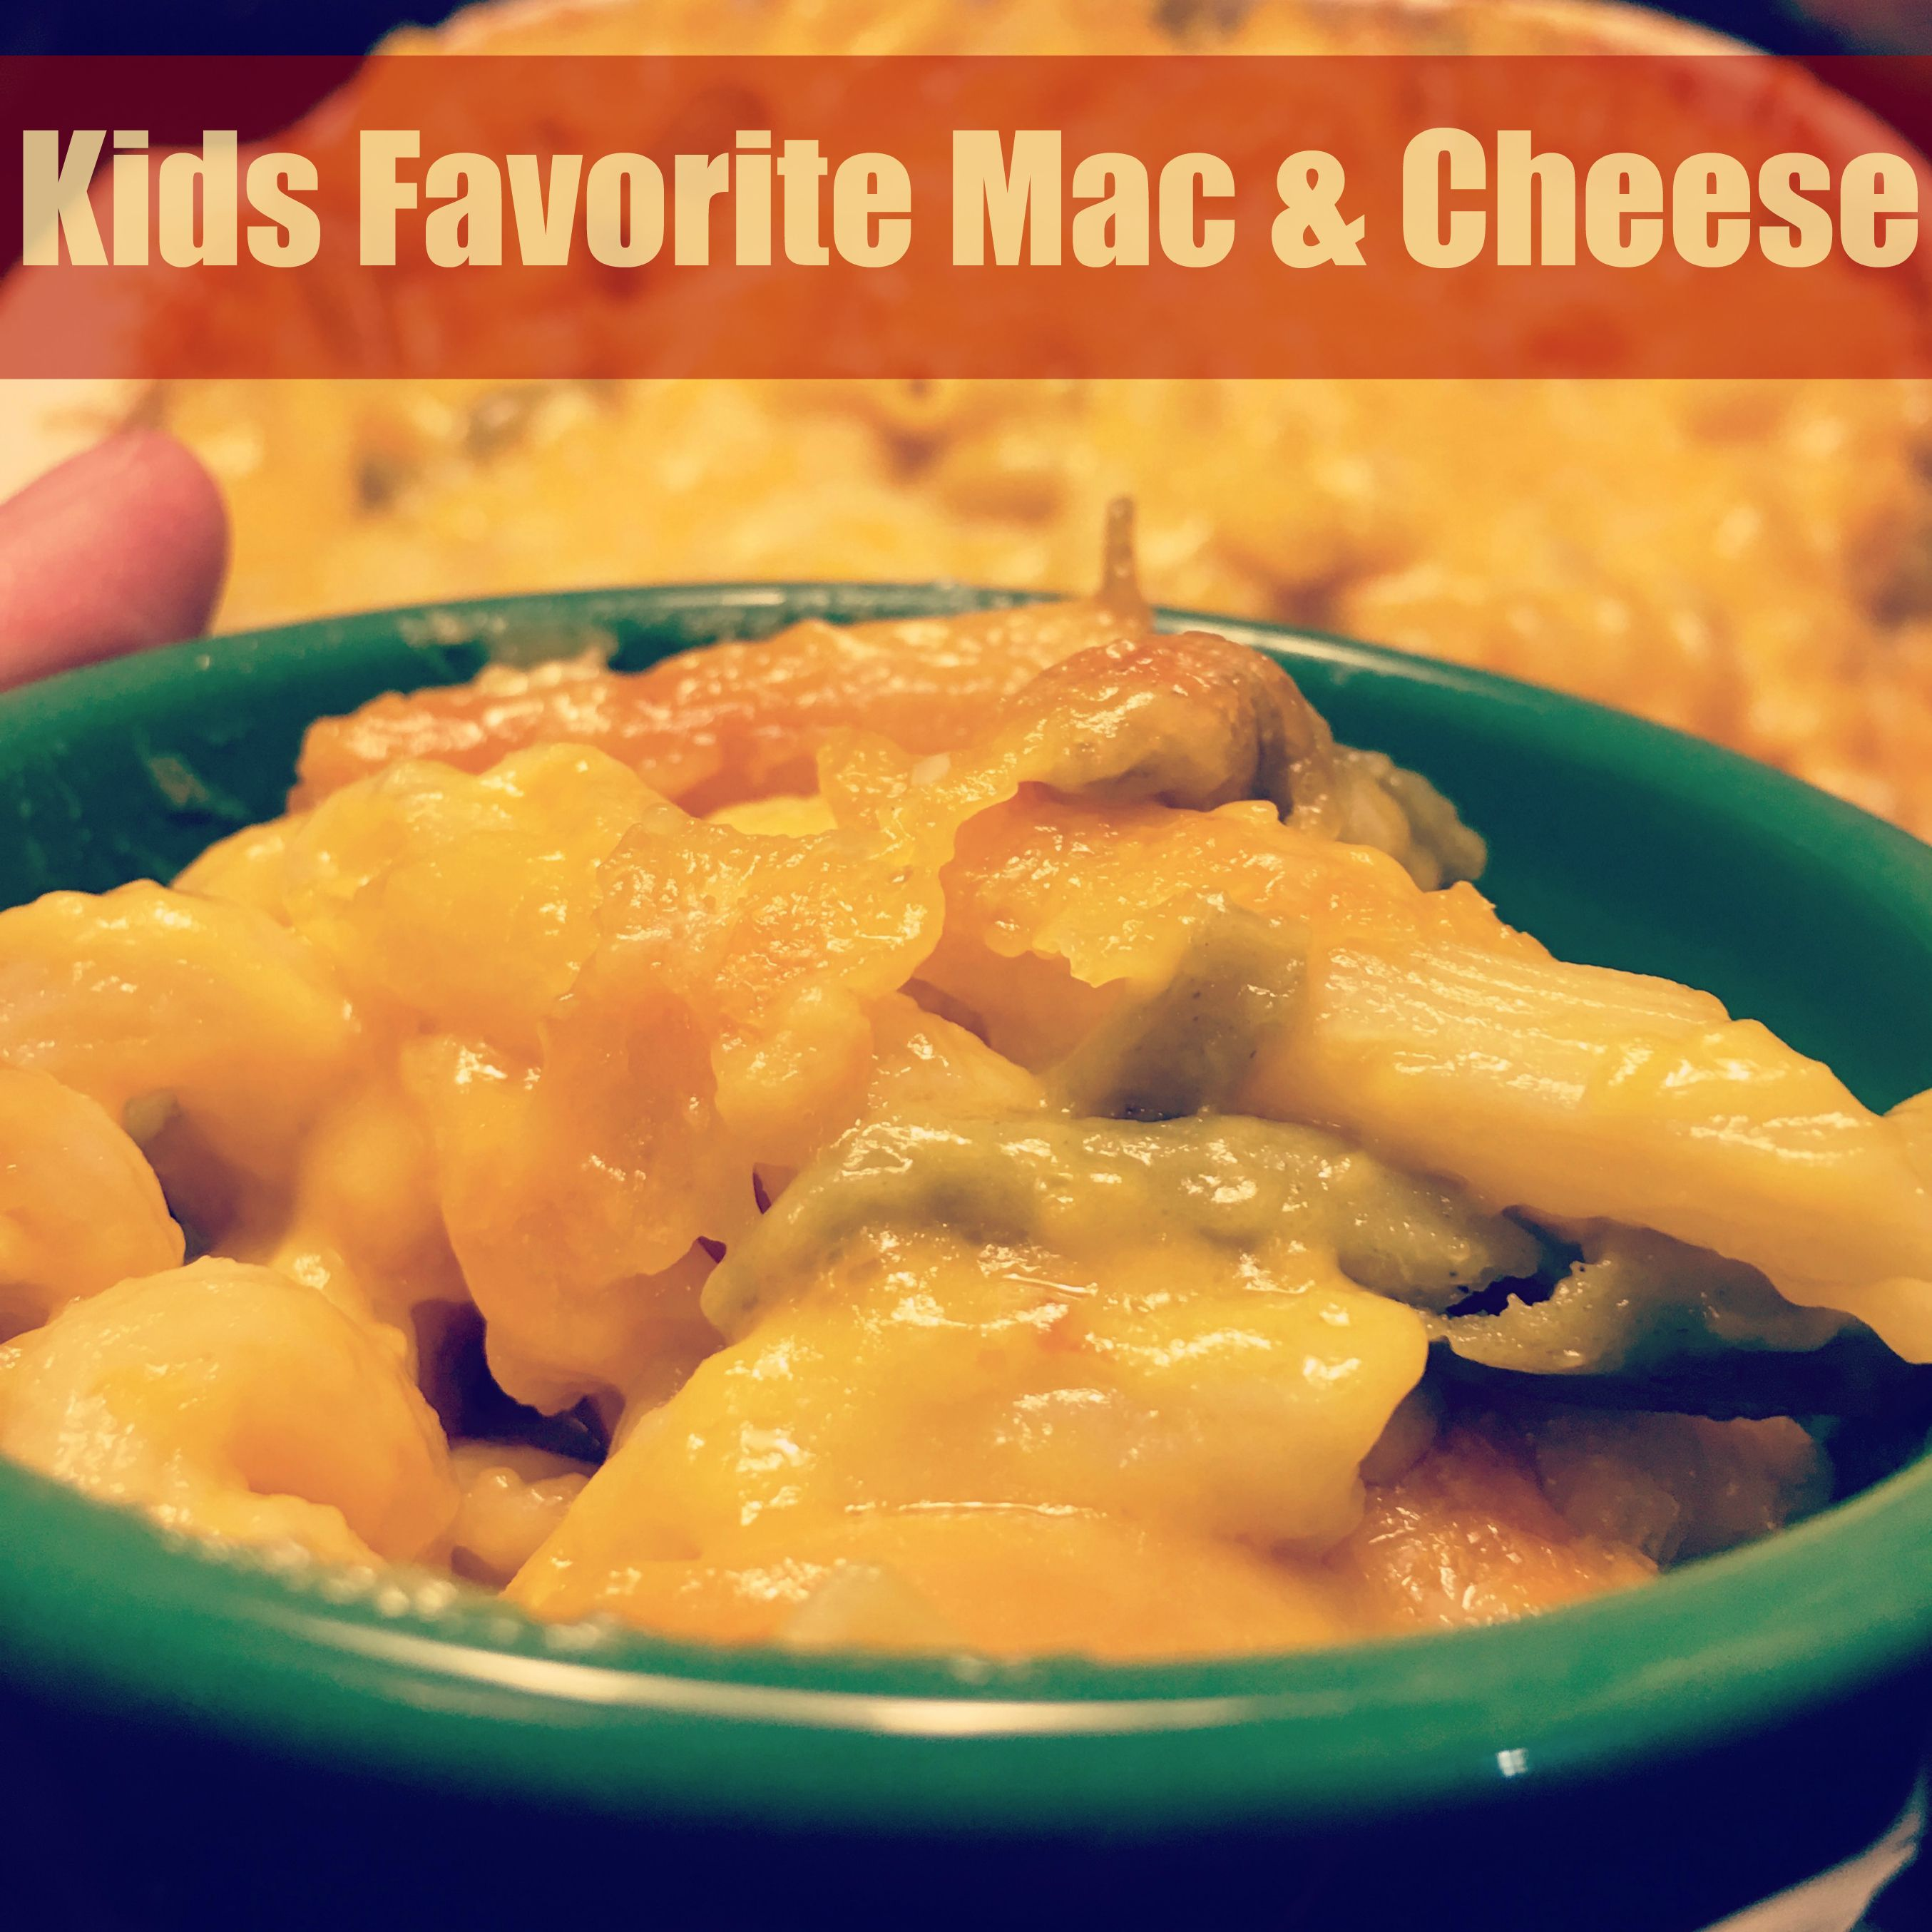 Kids Favorite Mac & Cheese ⋆ The Stuff of Success